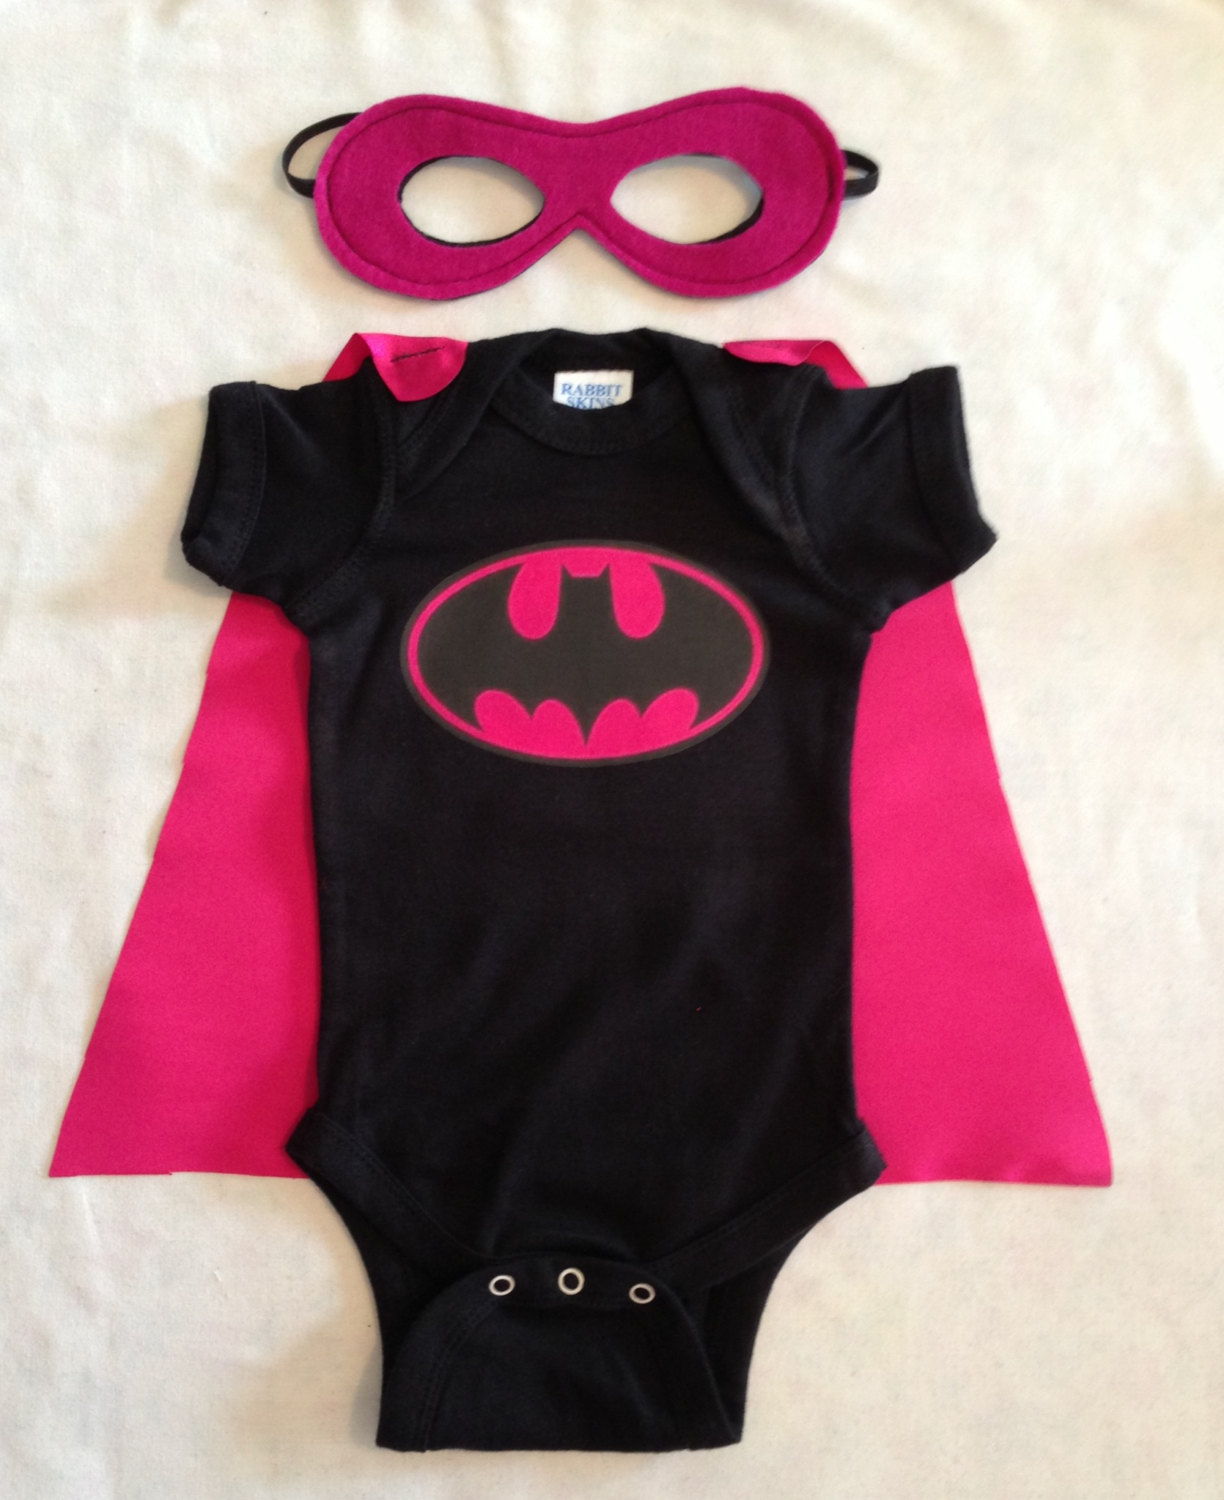 Il fullxfull.484866479 5bj8 original & Batgirl Superhero Baby Outfit with Detachable Satin Cape and ...